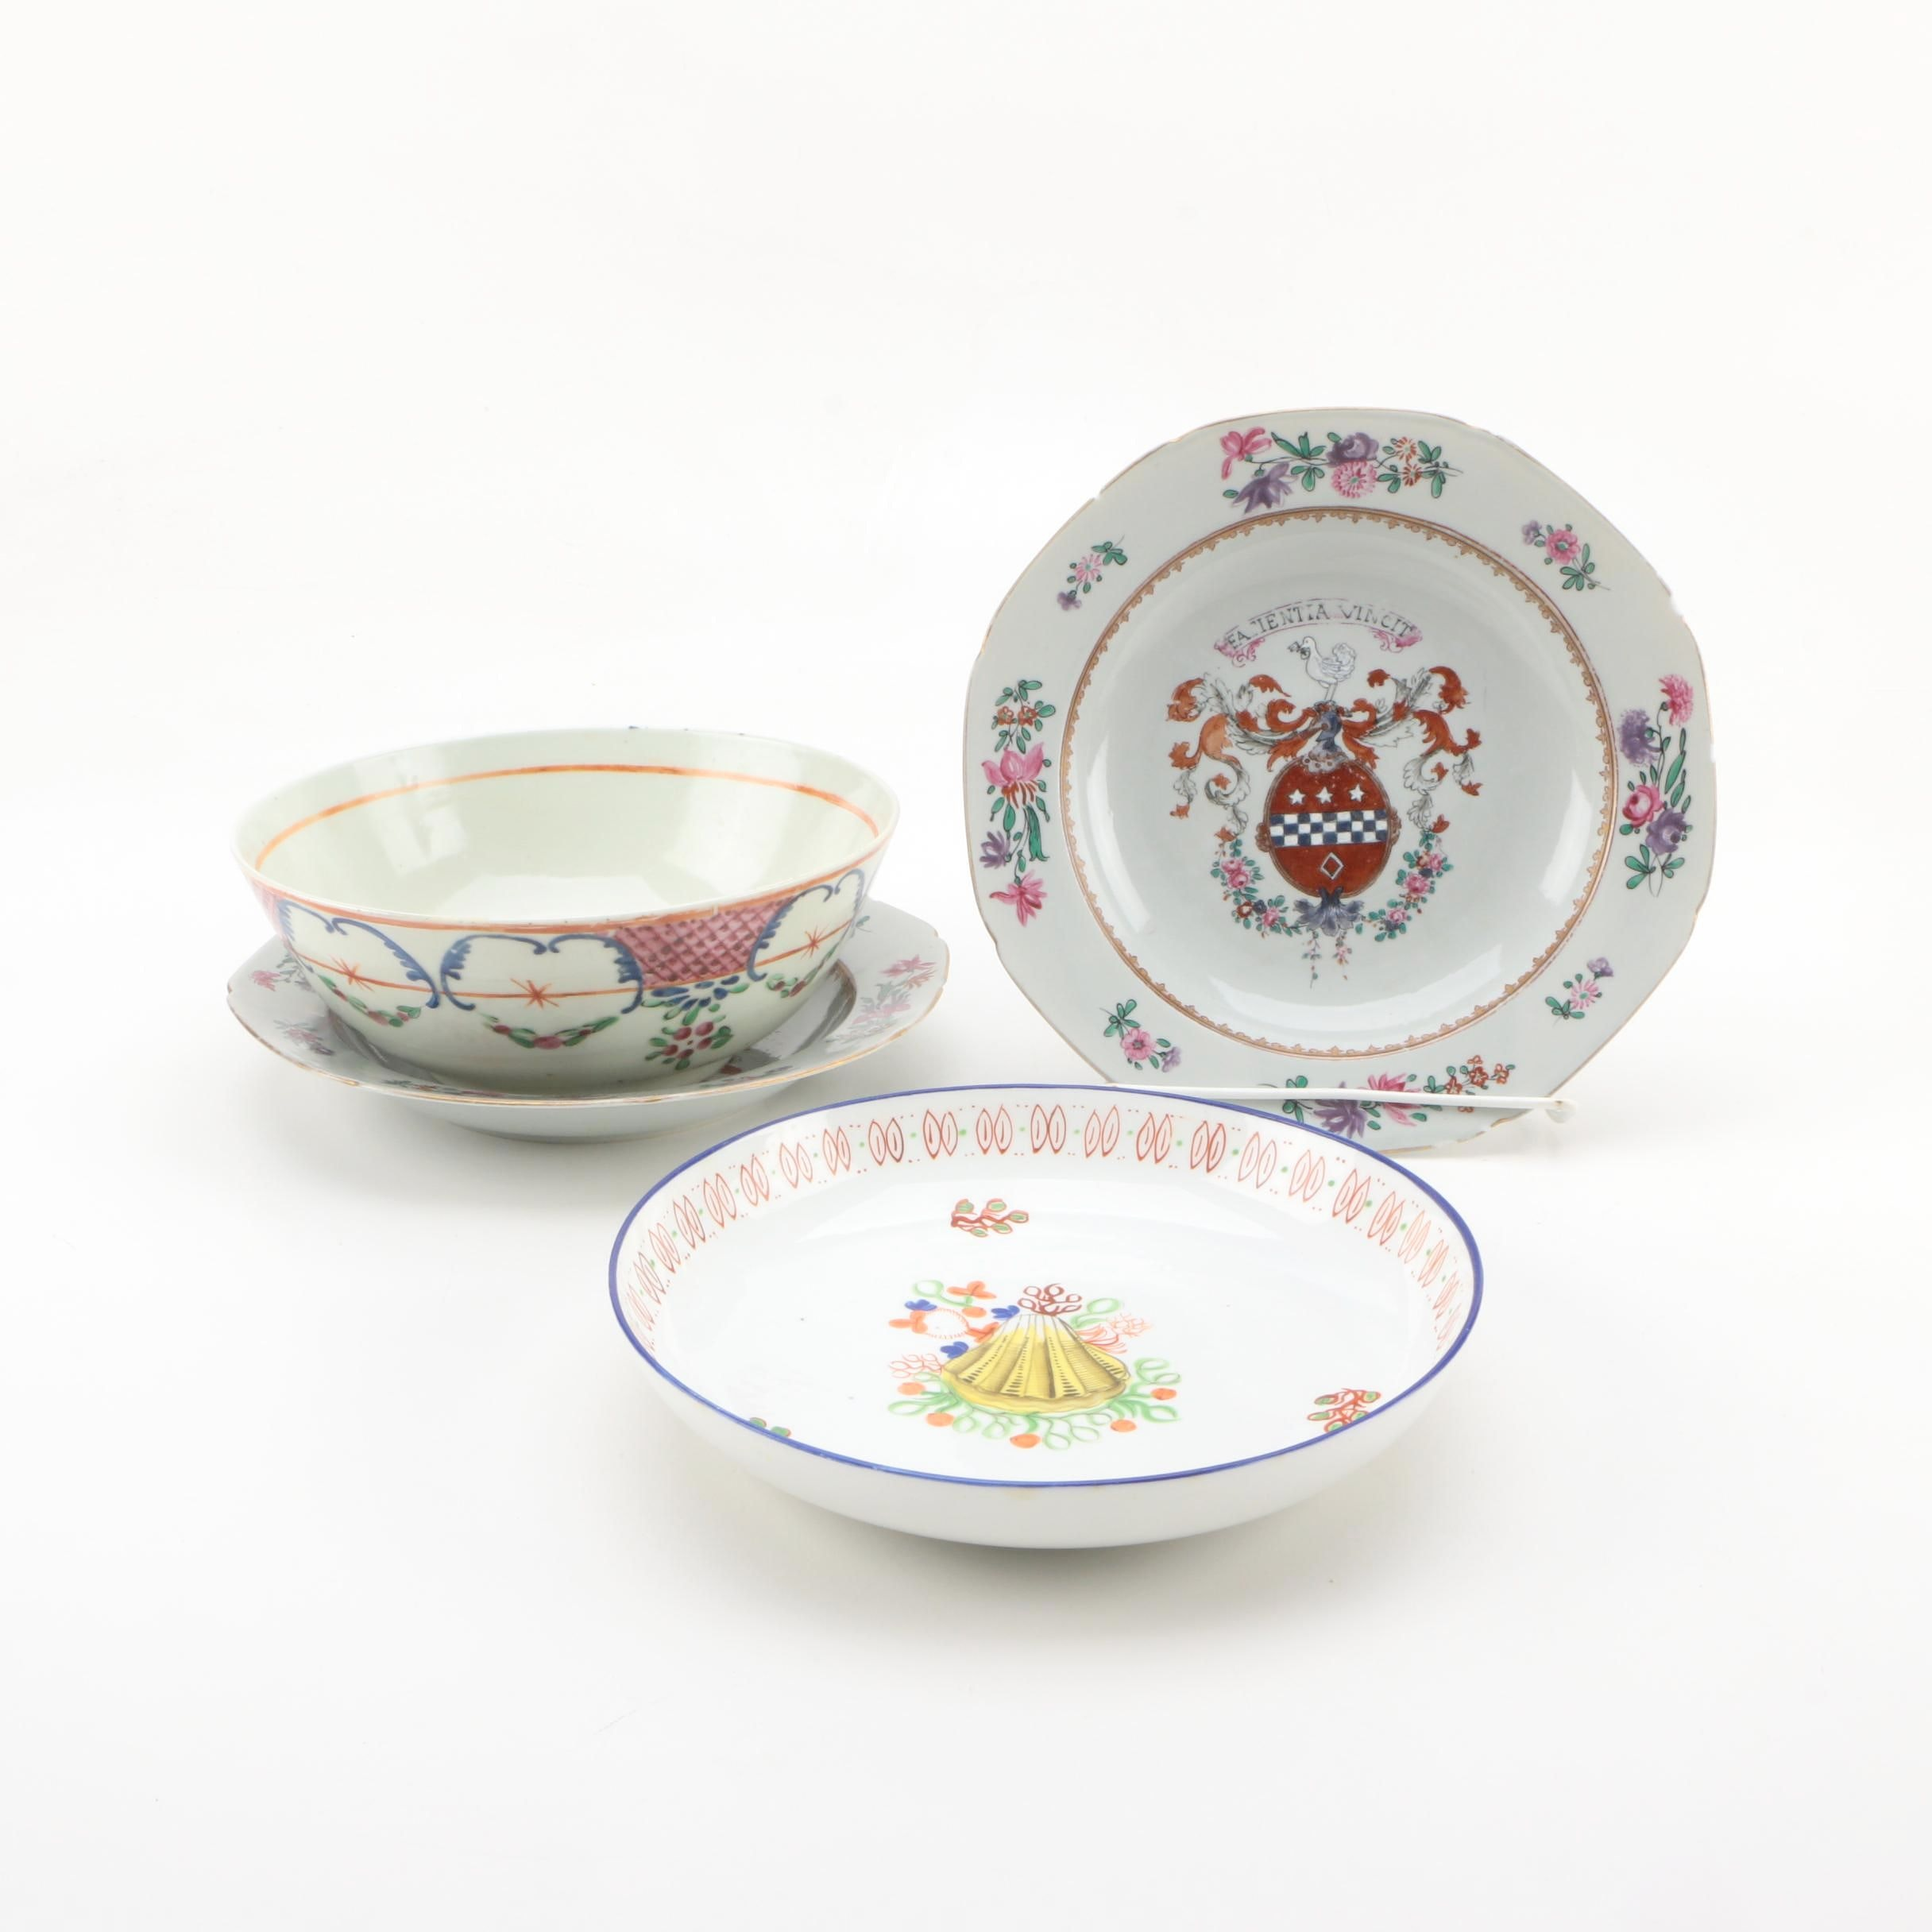 18th Century Chinese Armorial Plates and Other Antique Bowls